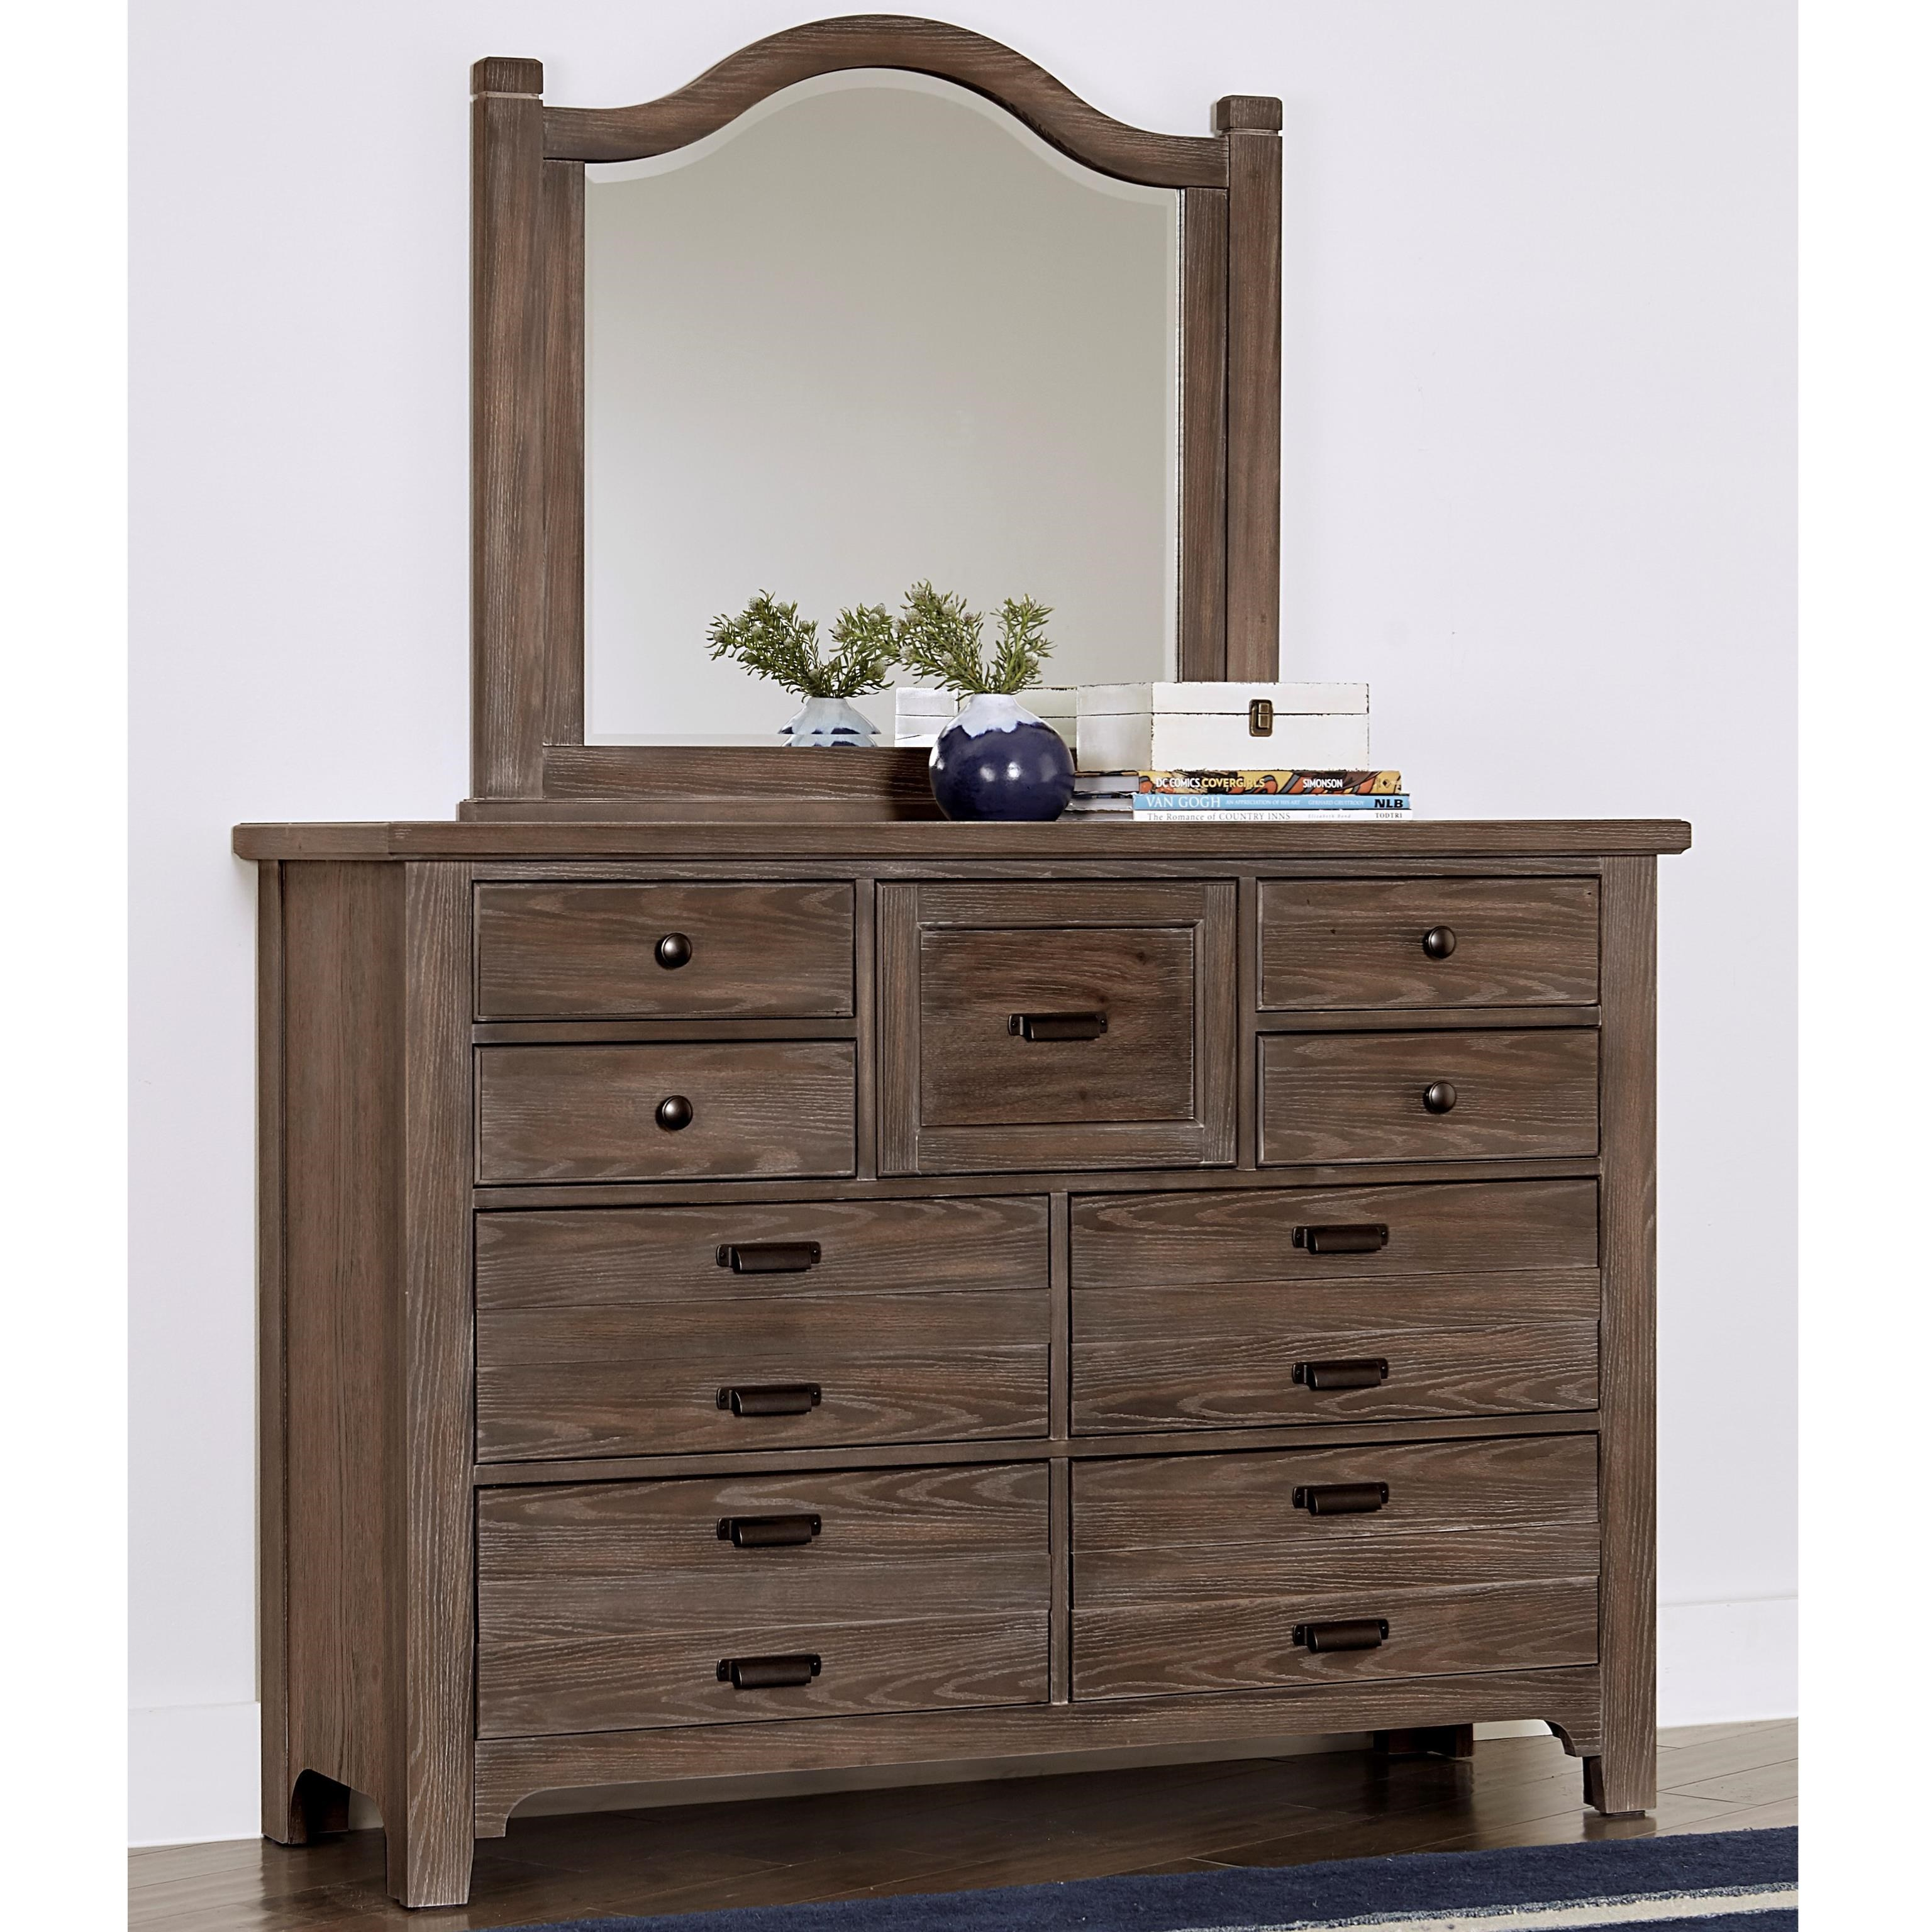 Bungalow Master Dresser with Master Arch Mirror by Laurel Mercantile Co. at Johnny Janosik